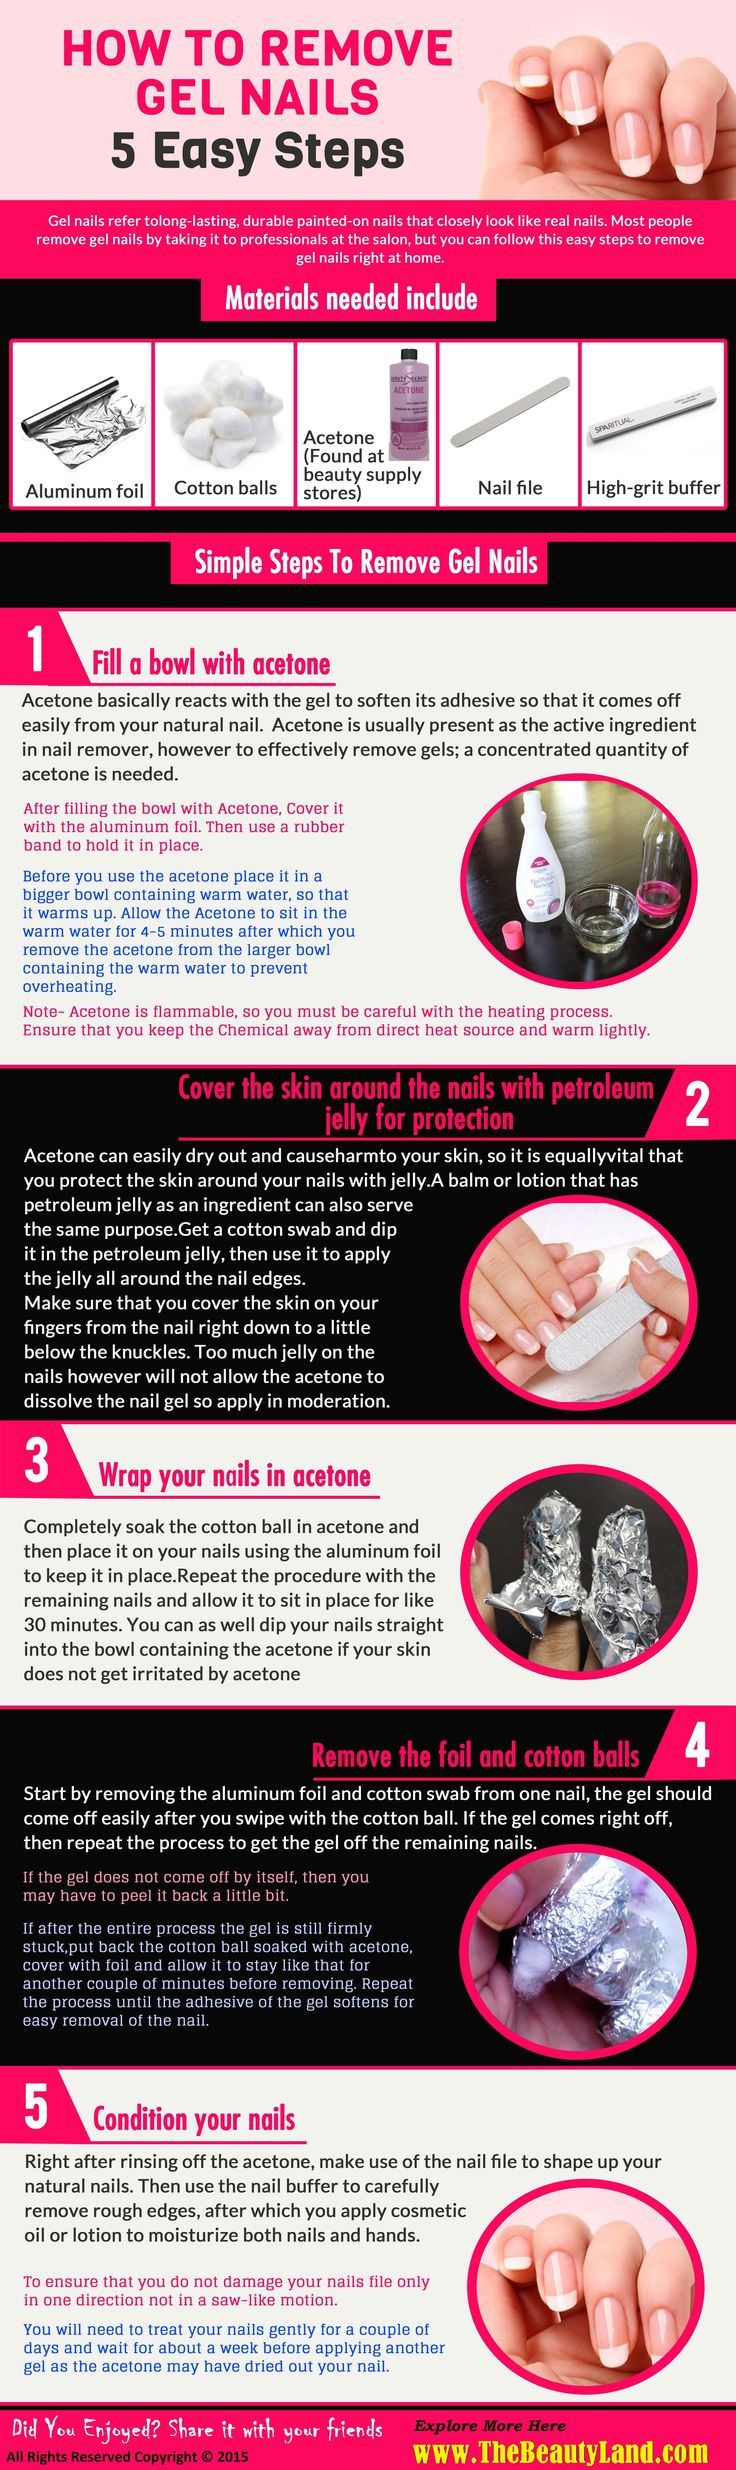 How to Remove #Gel #Nails – 5 Easy Steps http://www.thebeautyland.com/how-to-remove-gel-nails/  #nailcare